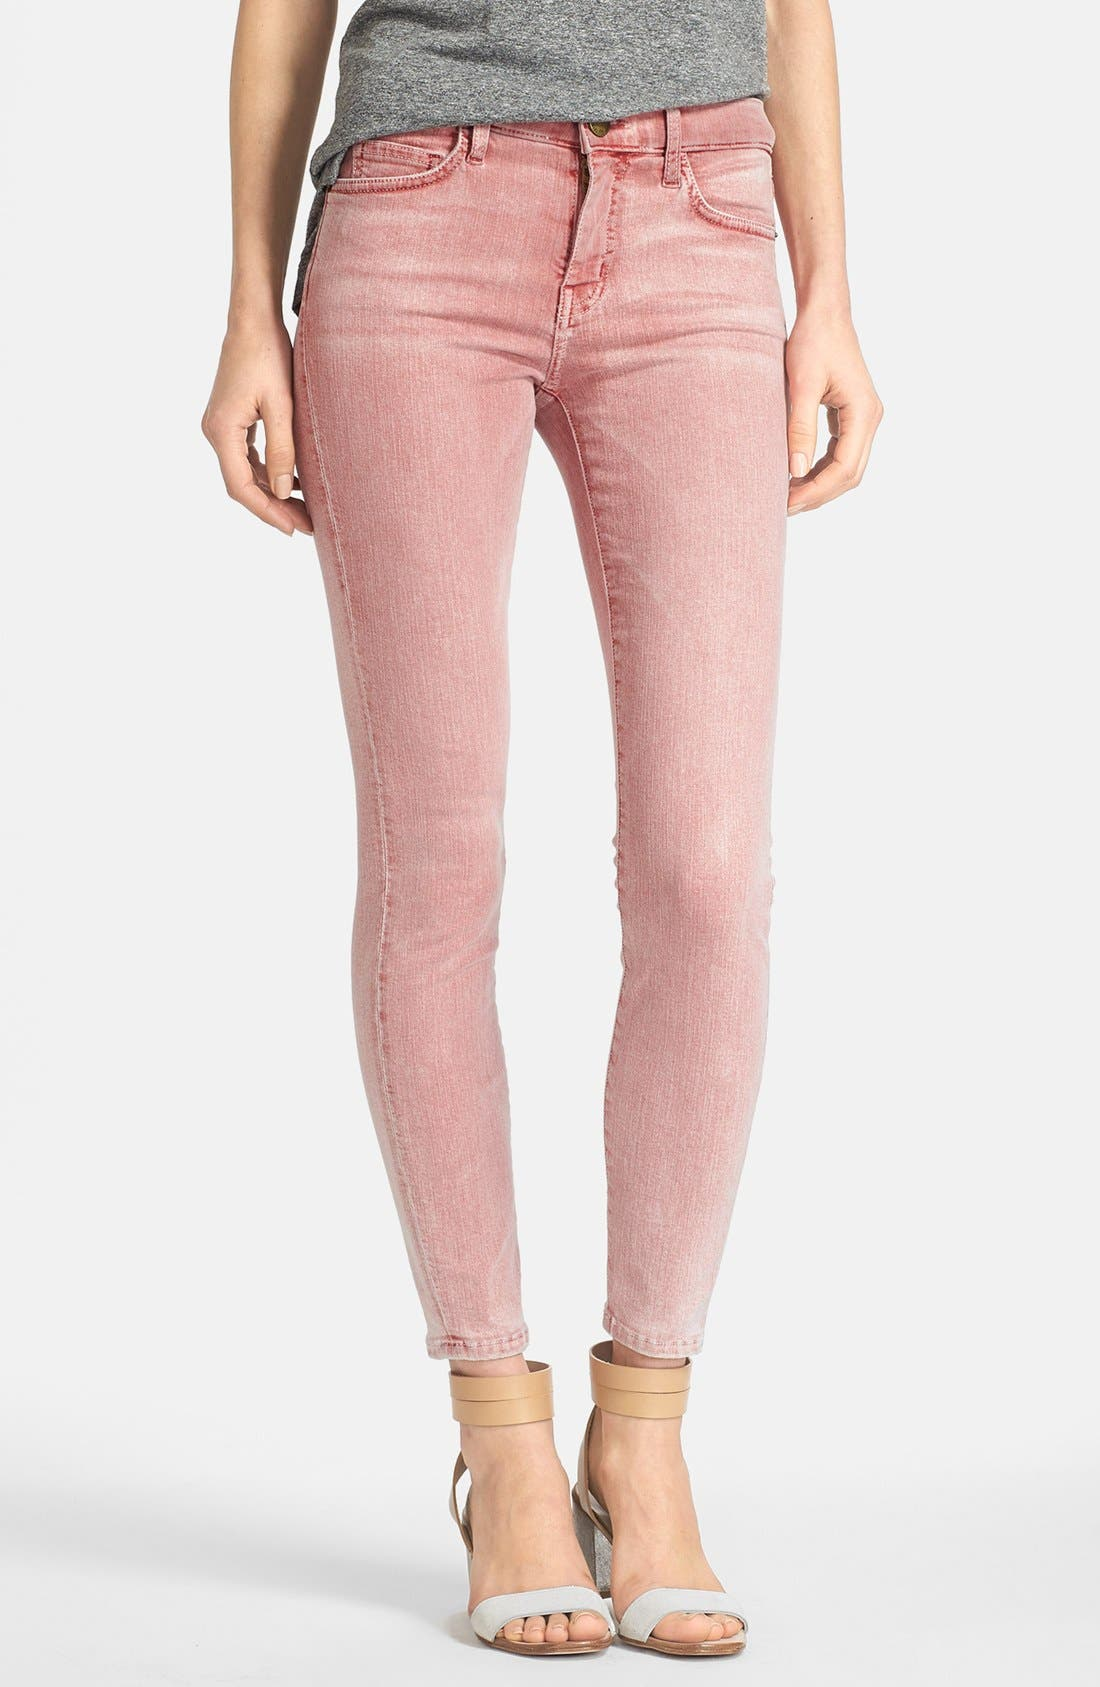 Alternate Image 1 Selected - Current/Elliott 'The Stiletto' Overdyed Stretch Jeans (Bleach Out Scarlet)